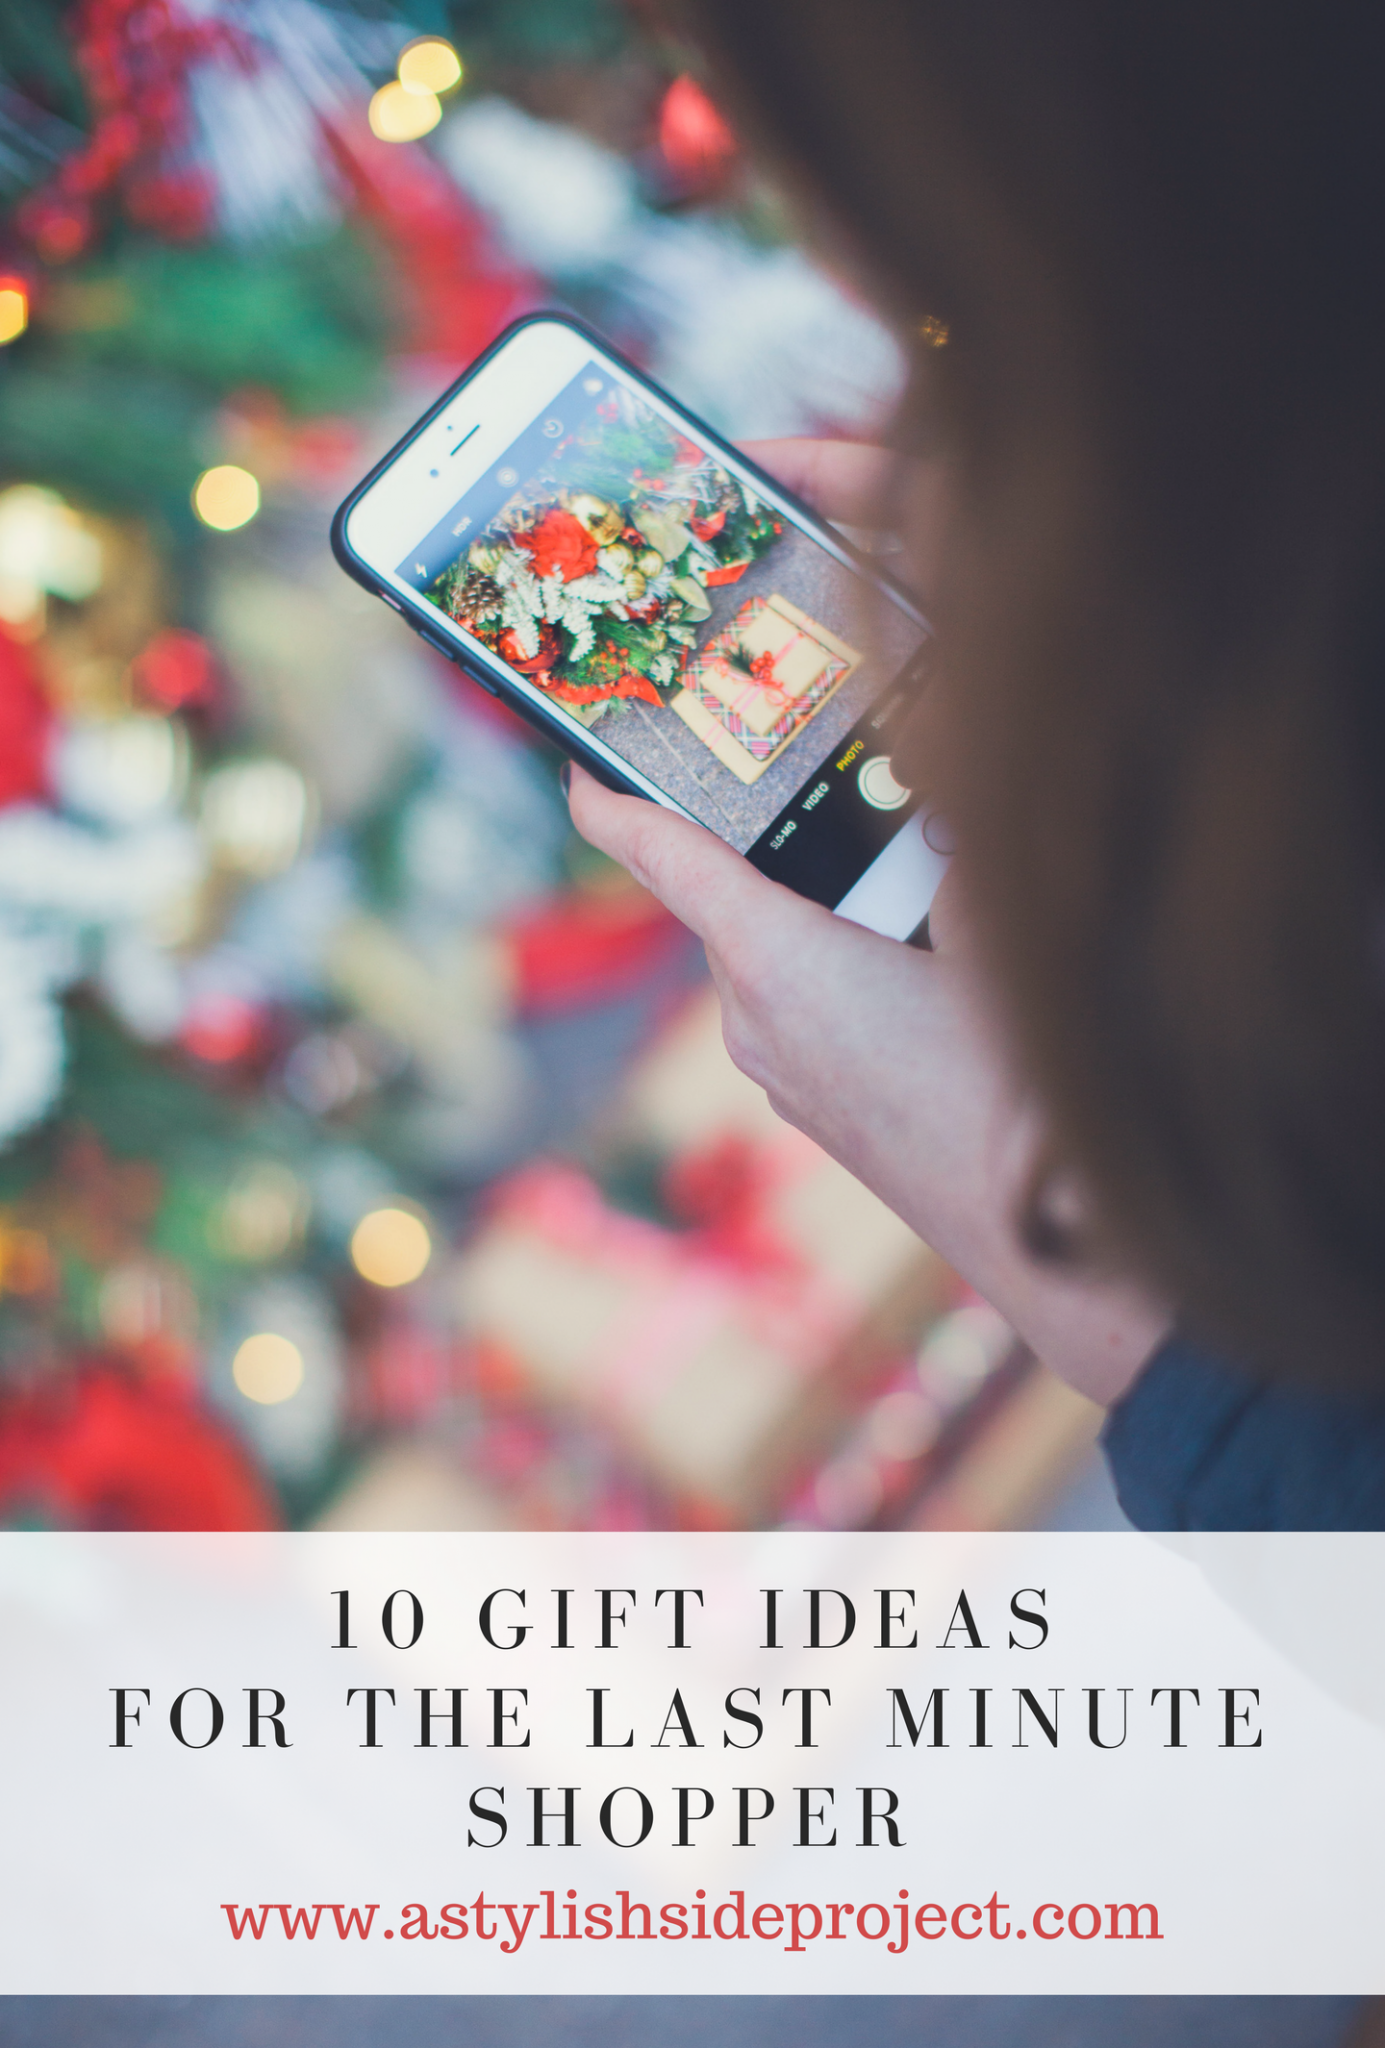 Lifestyle blogger Mollie Sheperdson shares her top 10 last minute gifts